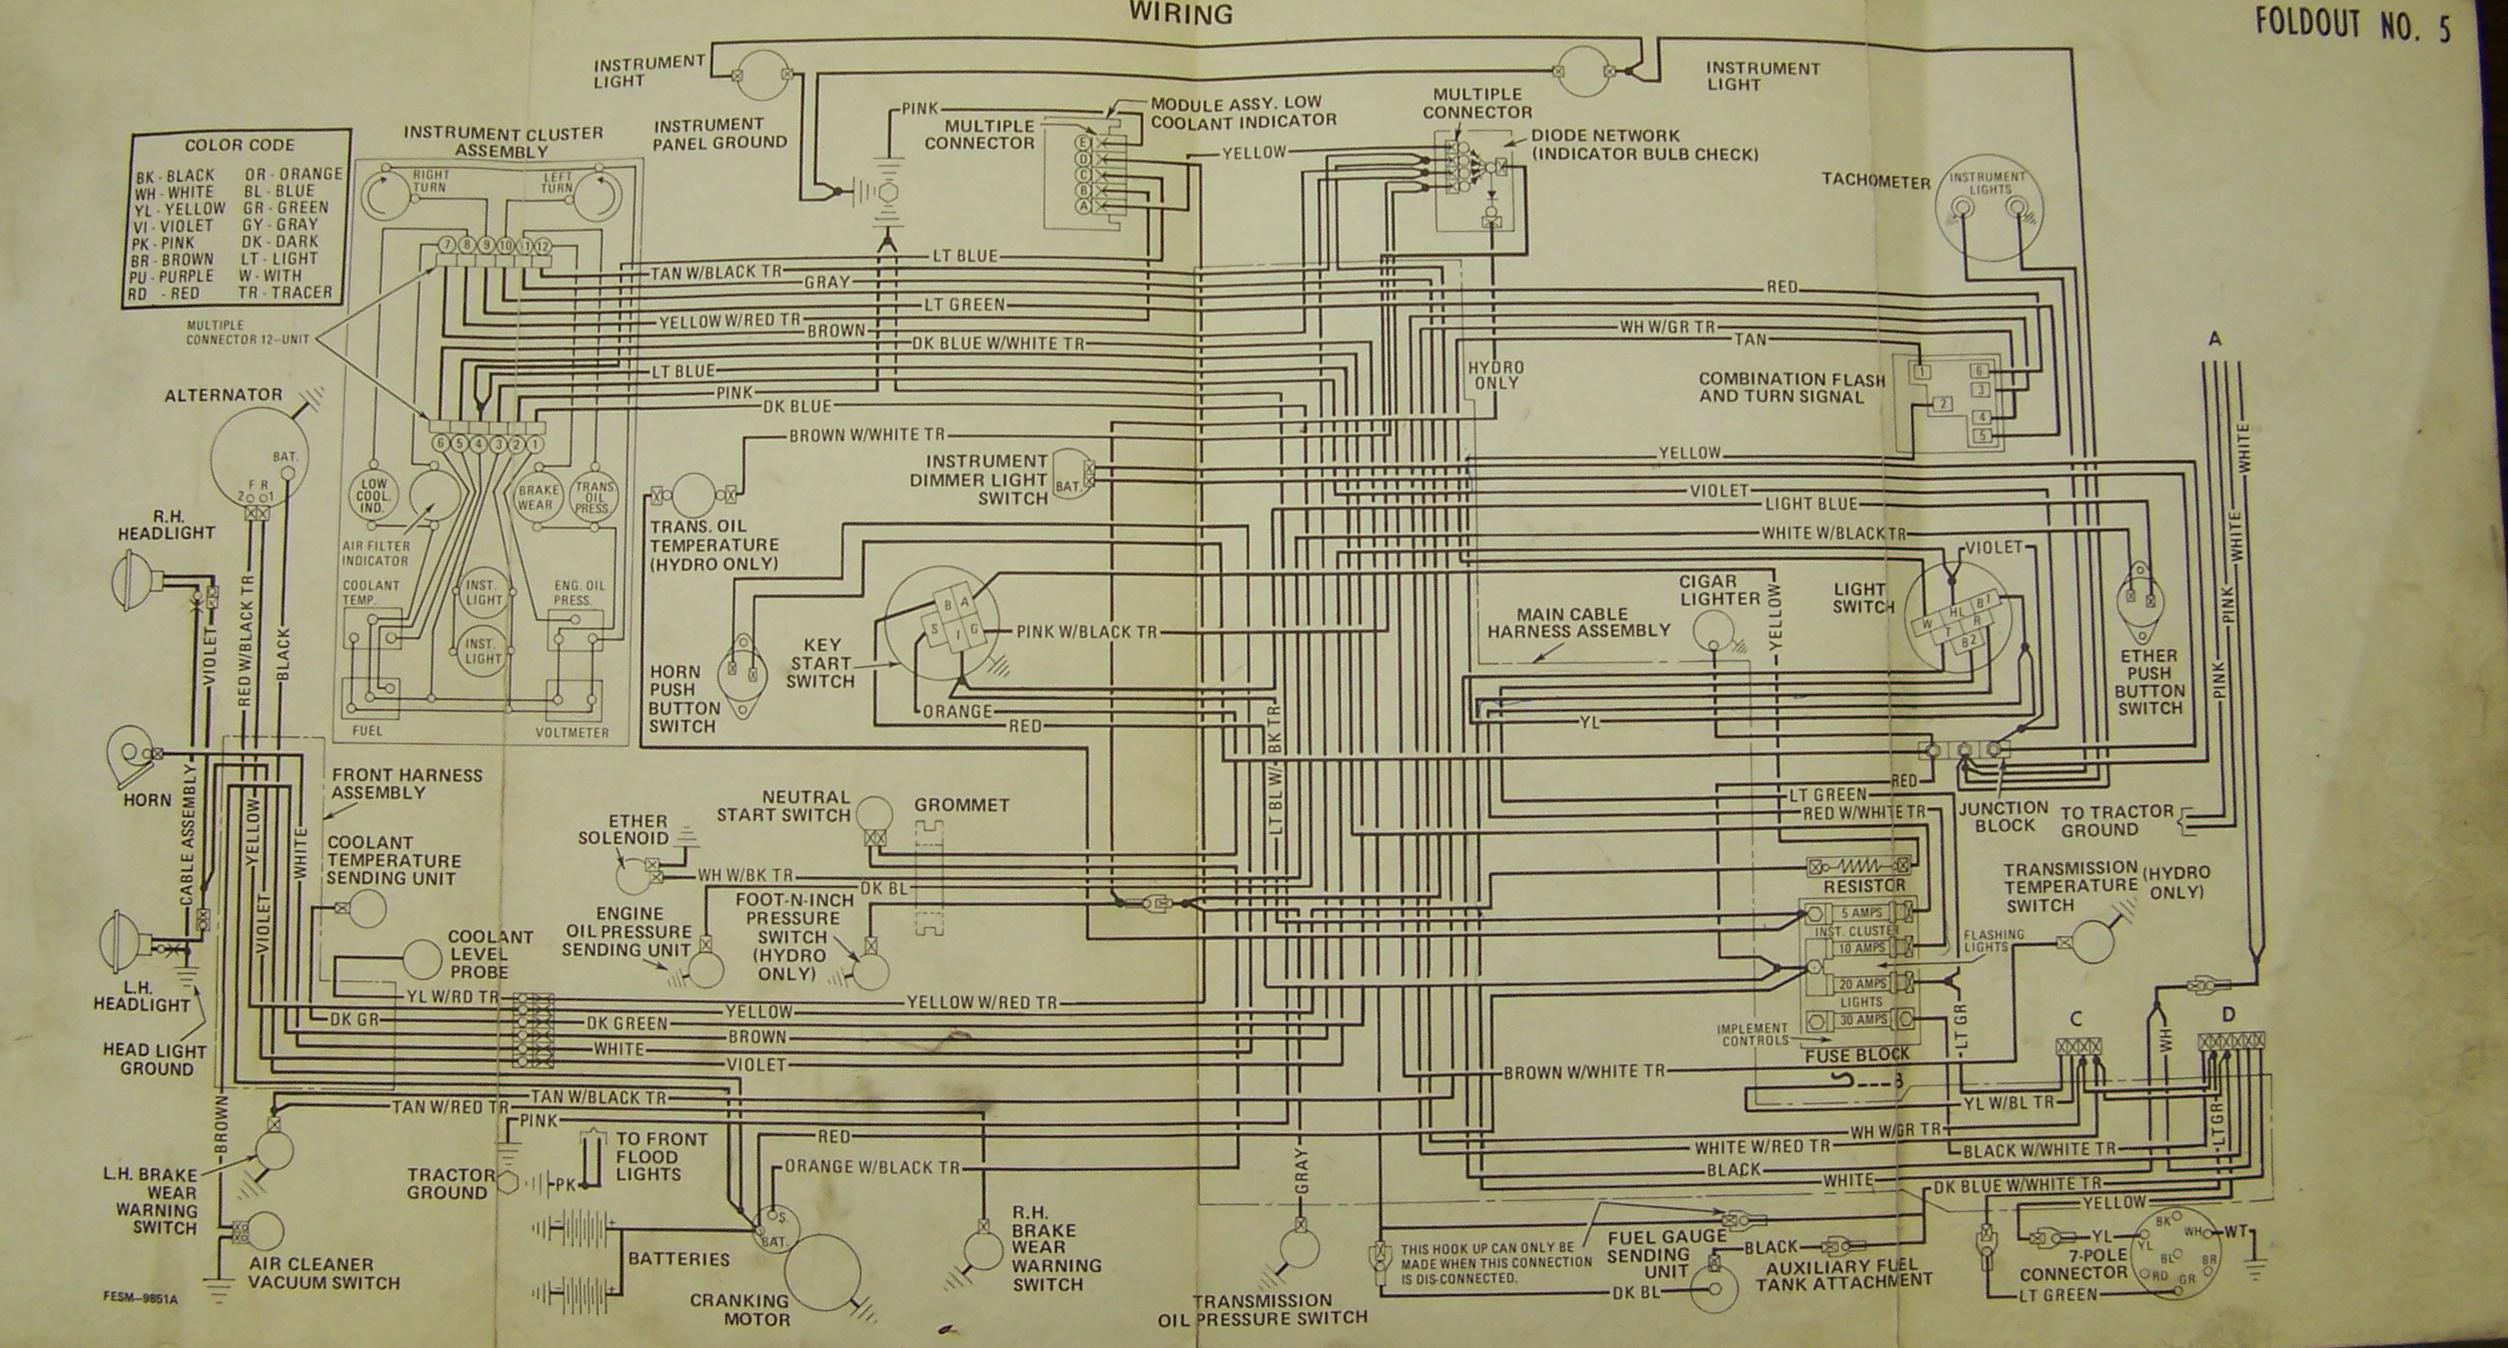 farmall 460 light wiring diagram carter   gruenewald co inc ih farmall tractor electrical  ih farmall tractor